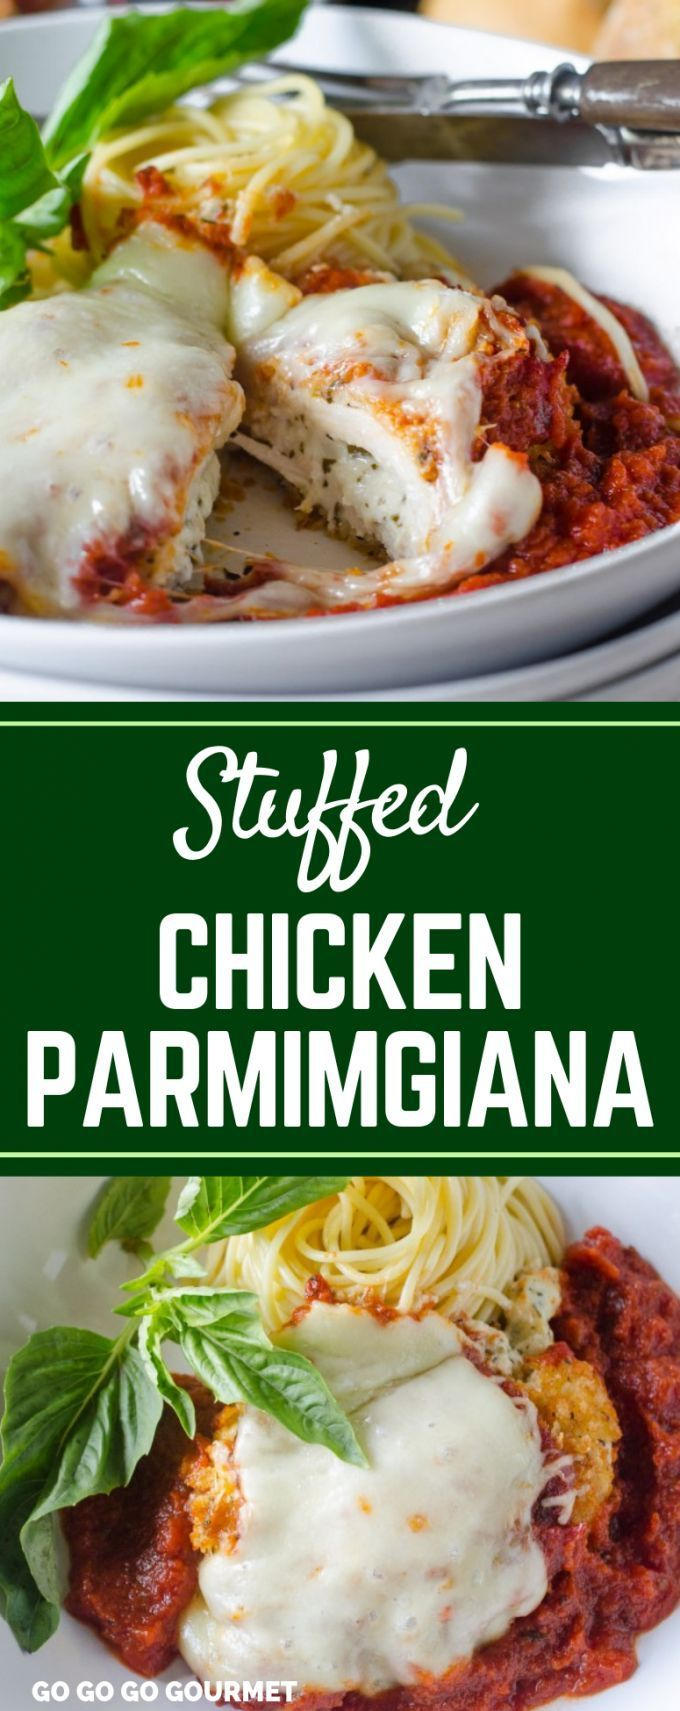 This easy Stuffed Chicken Parmesan recipe is so cheesy and delicious! Stuffed wi... - Amazing Dinner Recipes - #amazing #Cheesy #chicken #Delicious #Dinner #Easy #Parmesan #Recipe #Recipes #stuffed #chickenparmesan